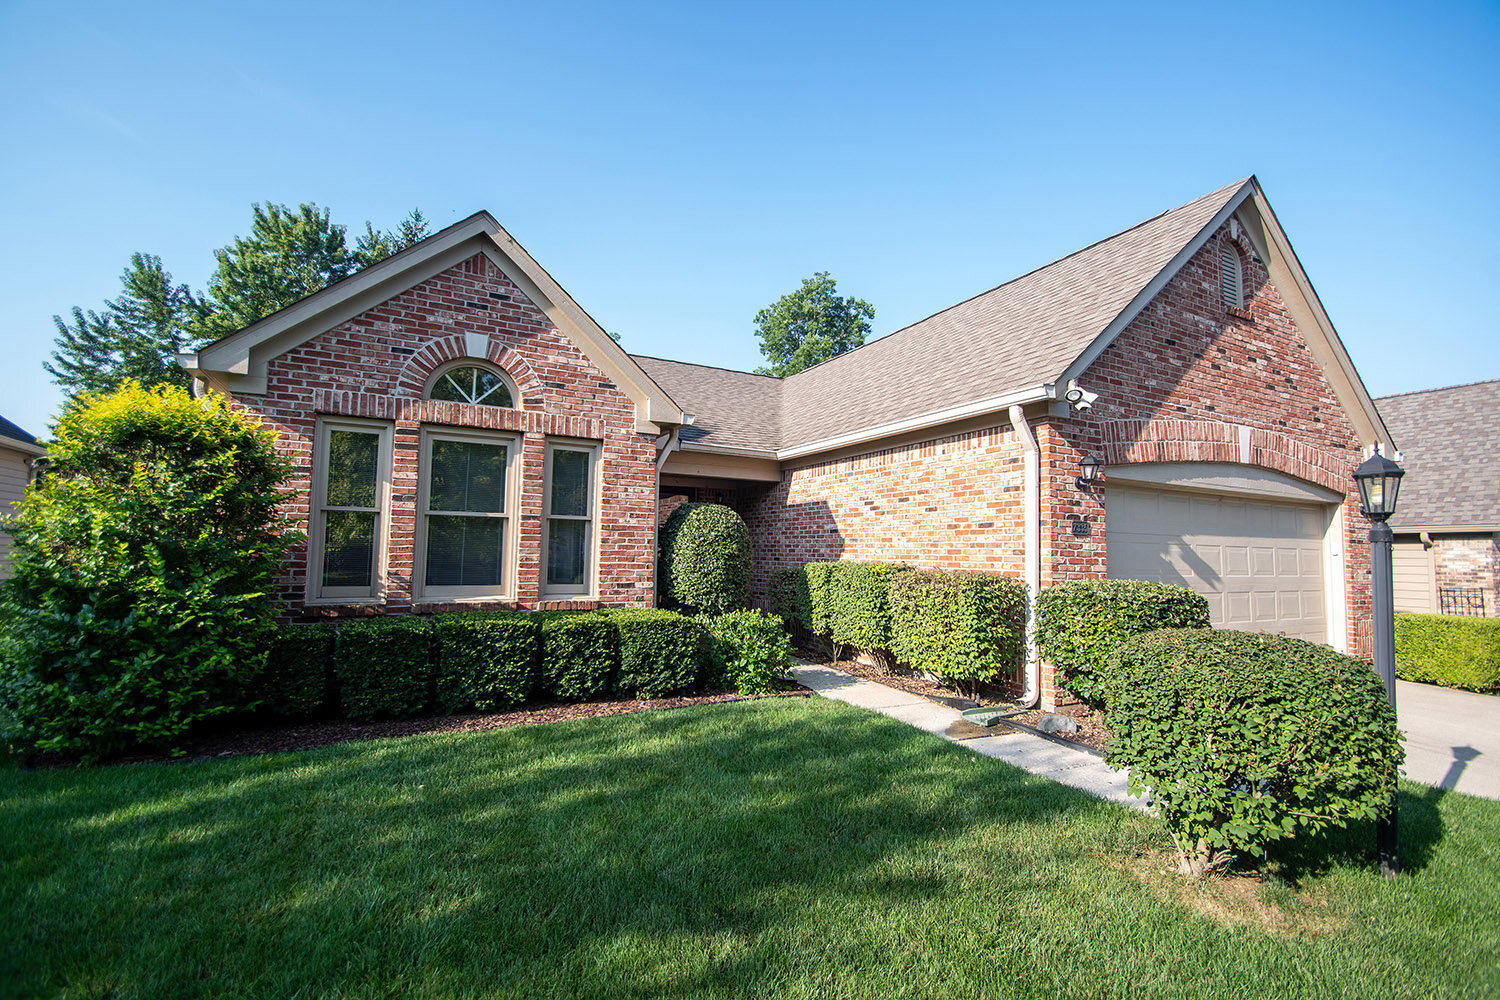 7335 Pymbroke Dr., Fishers   Listed at $250,000